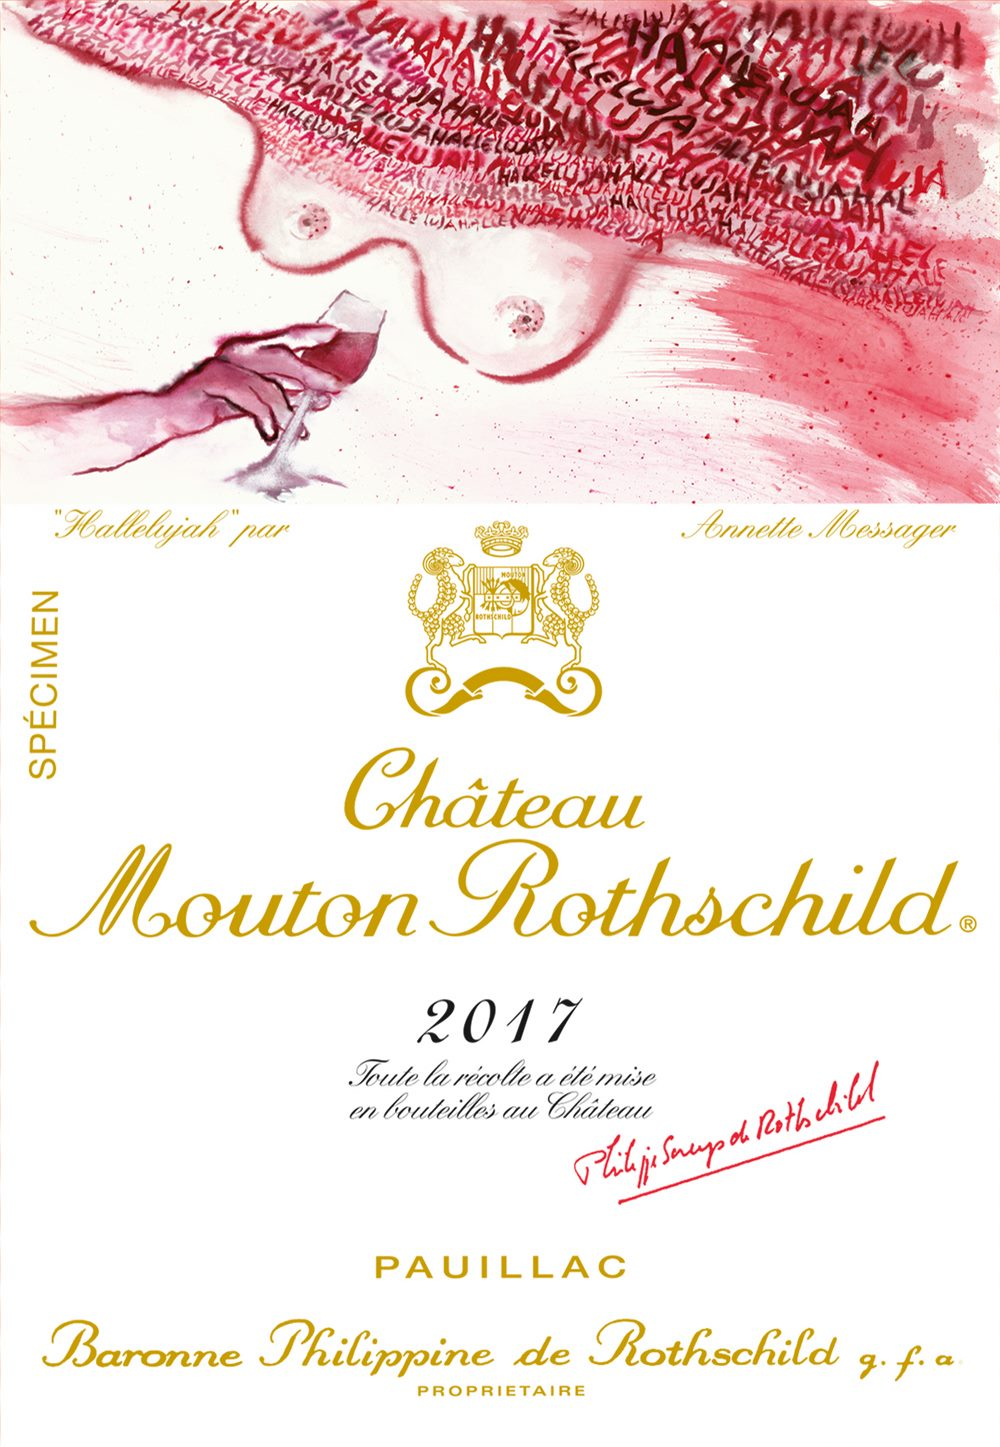 Annette Messager illustrates the label of 2017 Château Mouton Rothschild